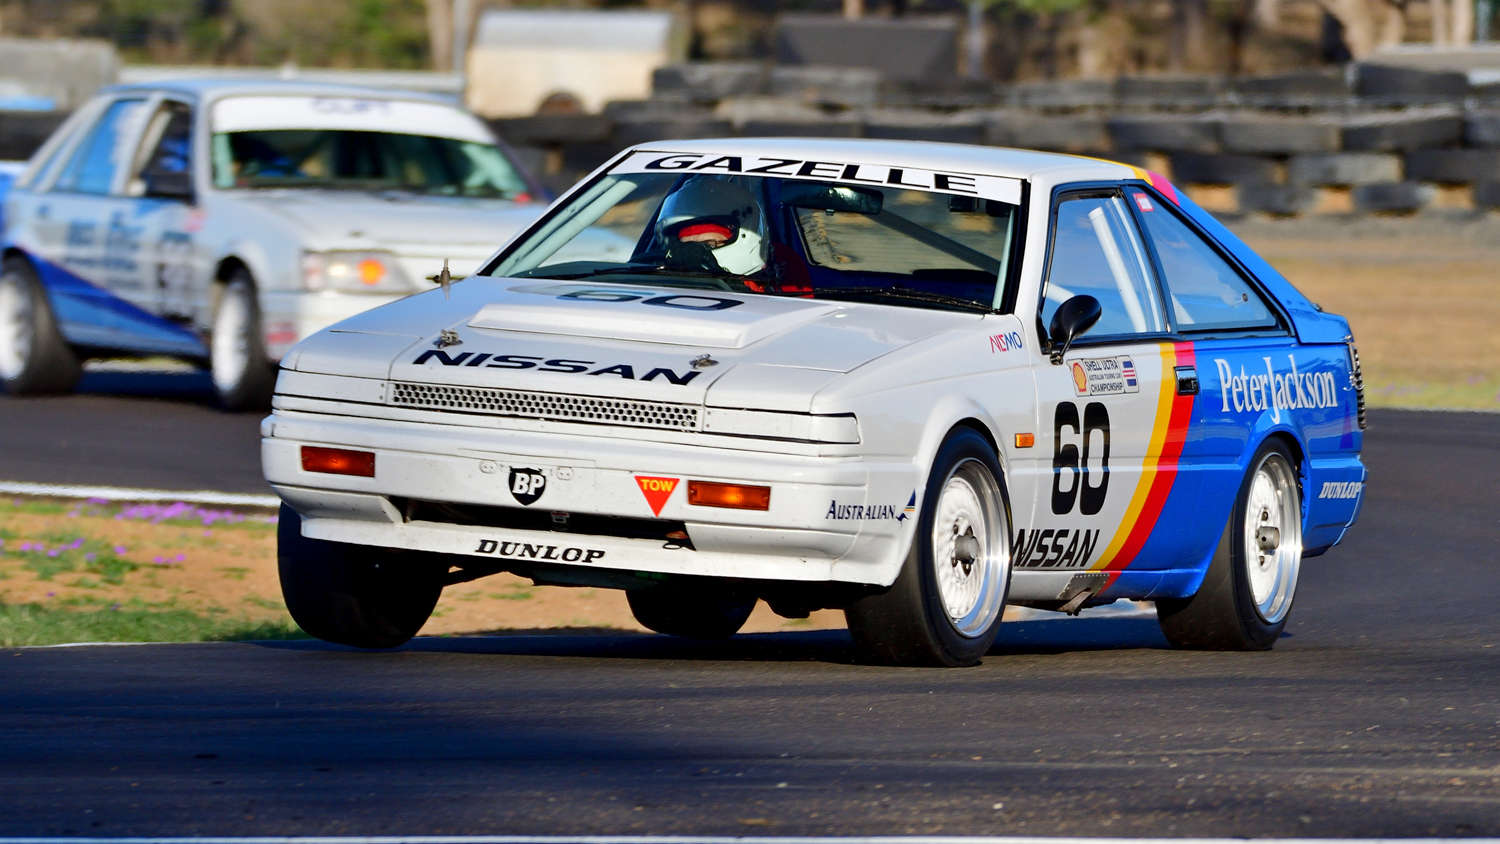 The Nissan Gazelle of Brian Henderson. Peter Buchanan Photo. PETER BUCHANAN    0417349937